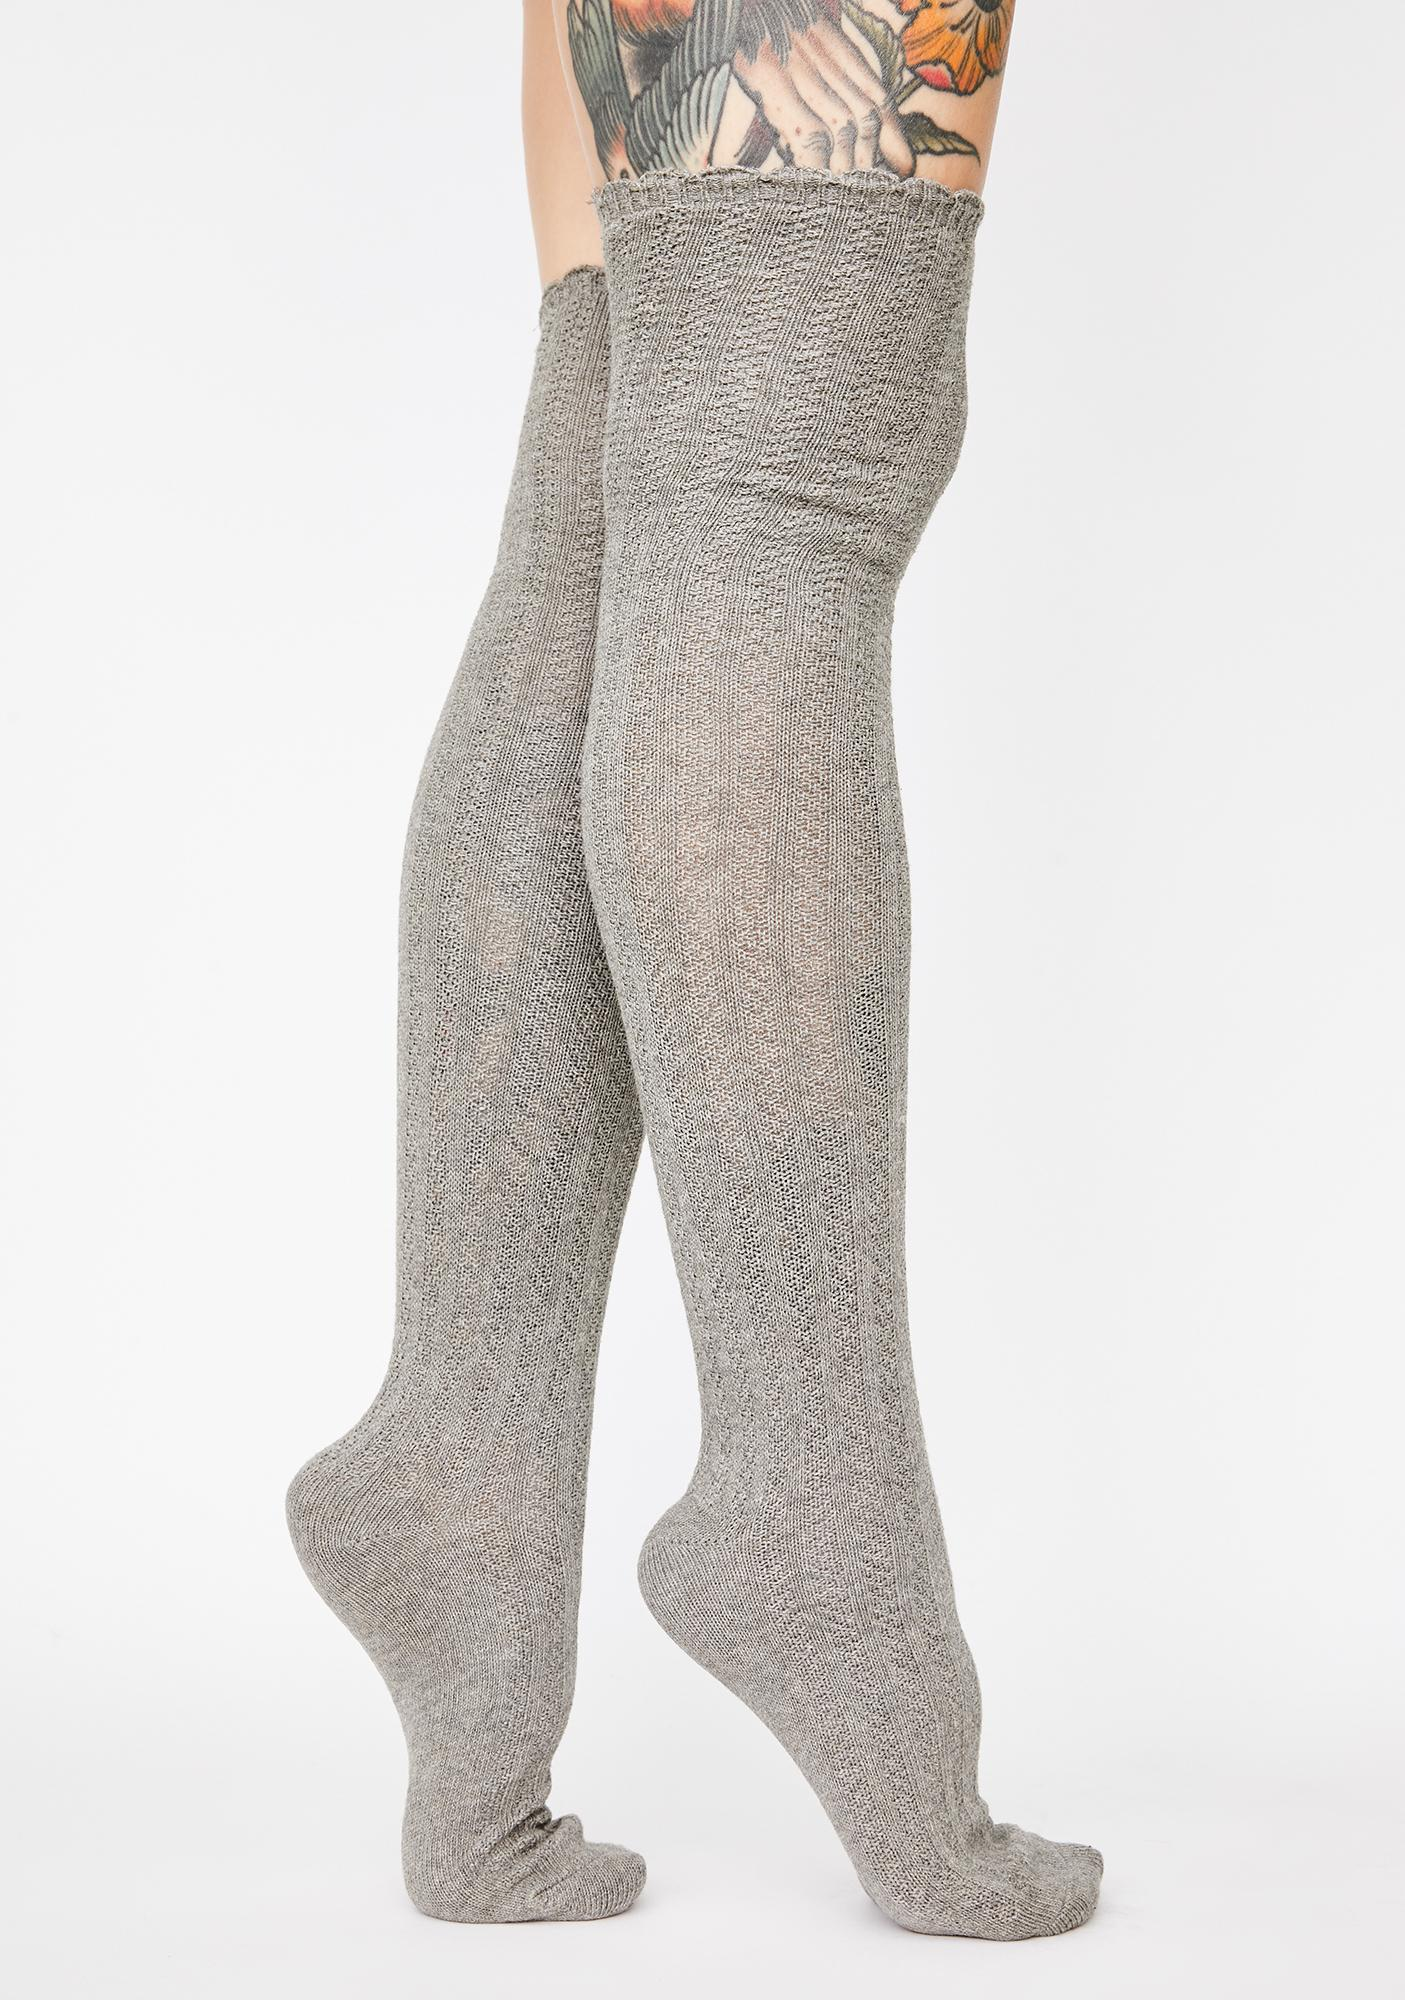 MeMoi Linear Twist Over The Knee Socks